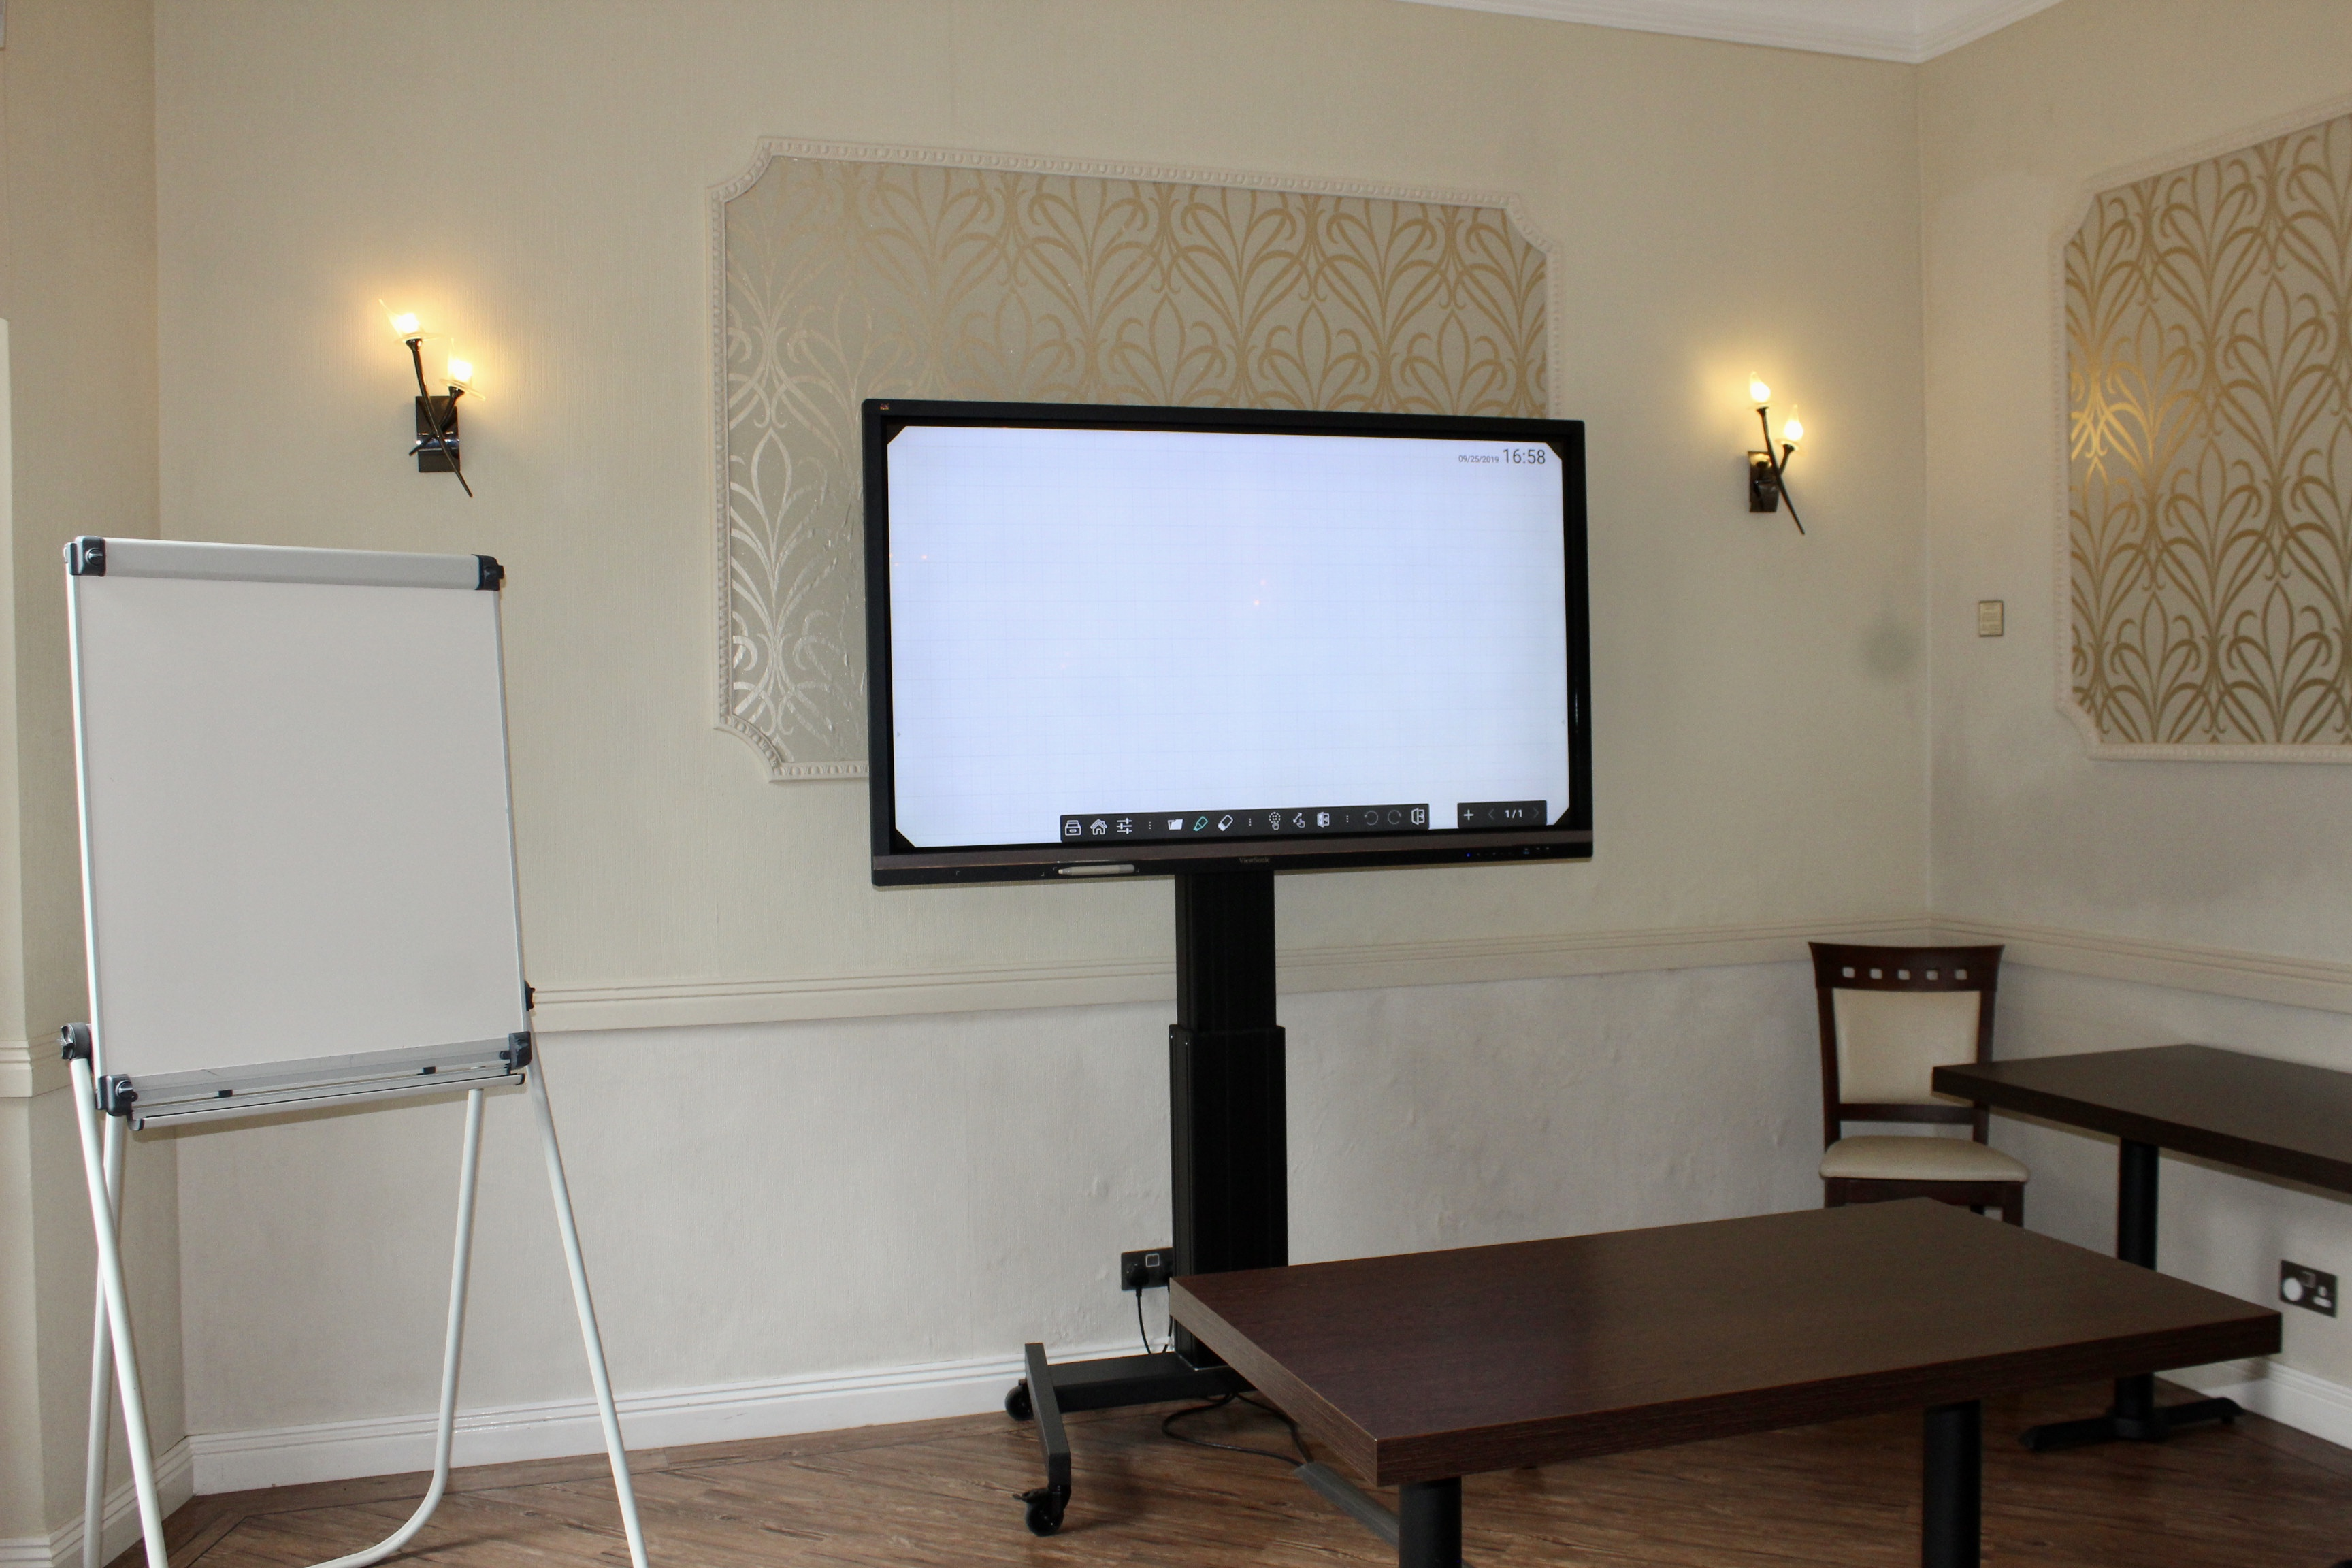 Corporate venue monitor and presentation equipment